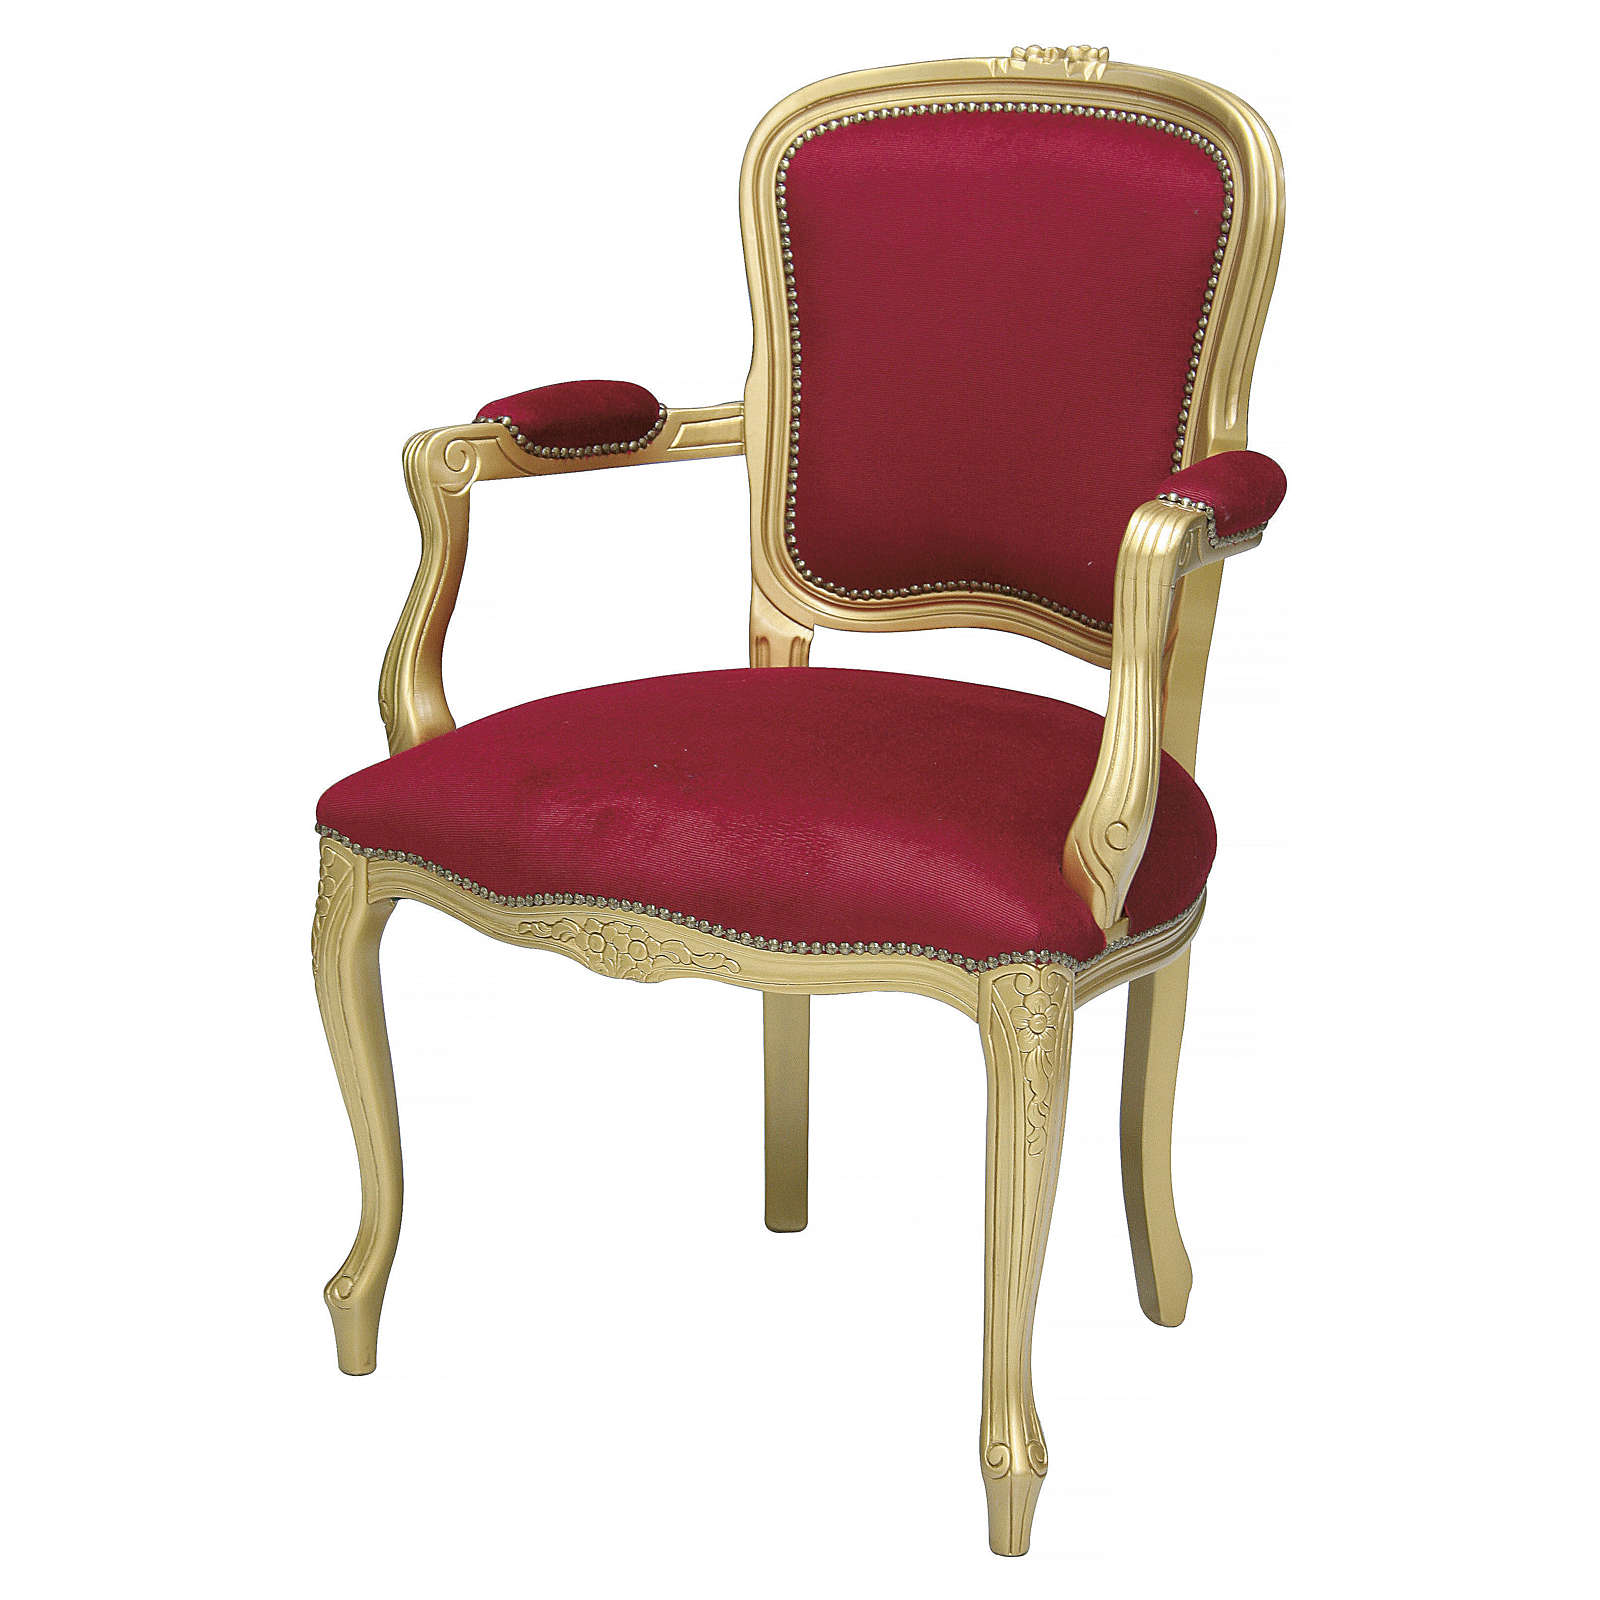 Armchair in walnut wood & gold leaf, red velvet baroque style 4